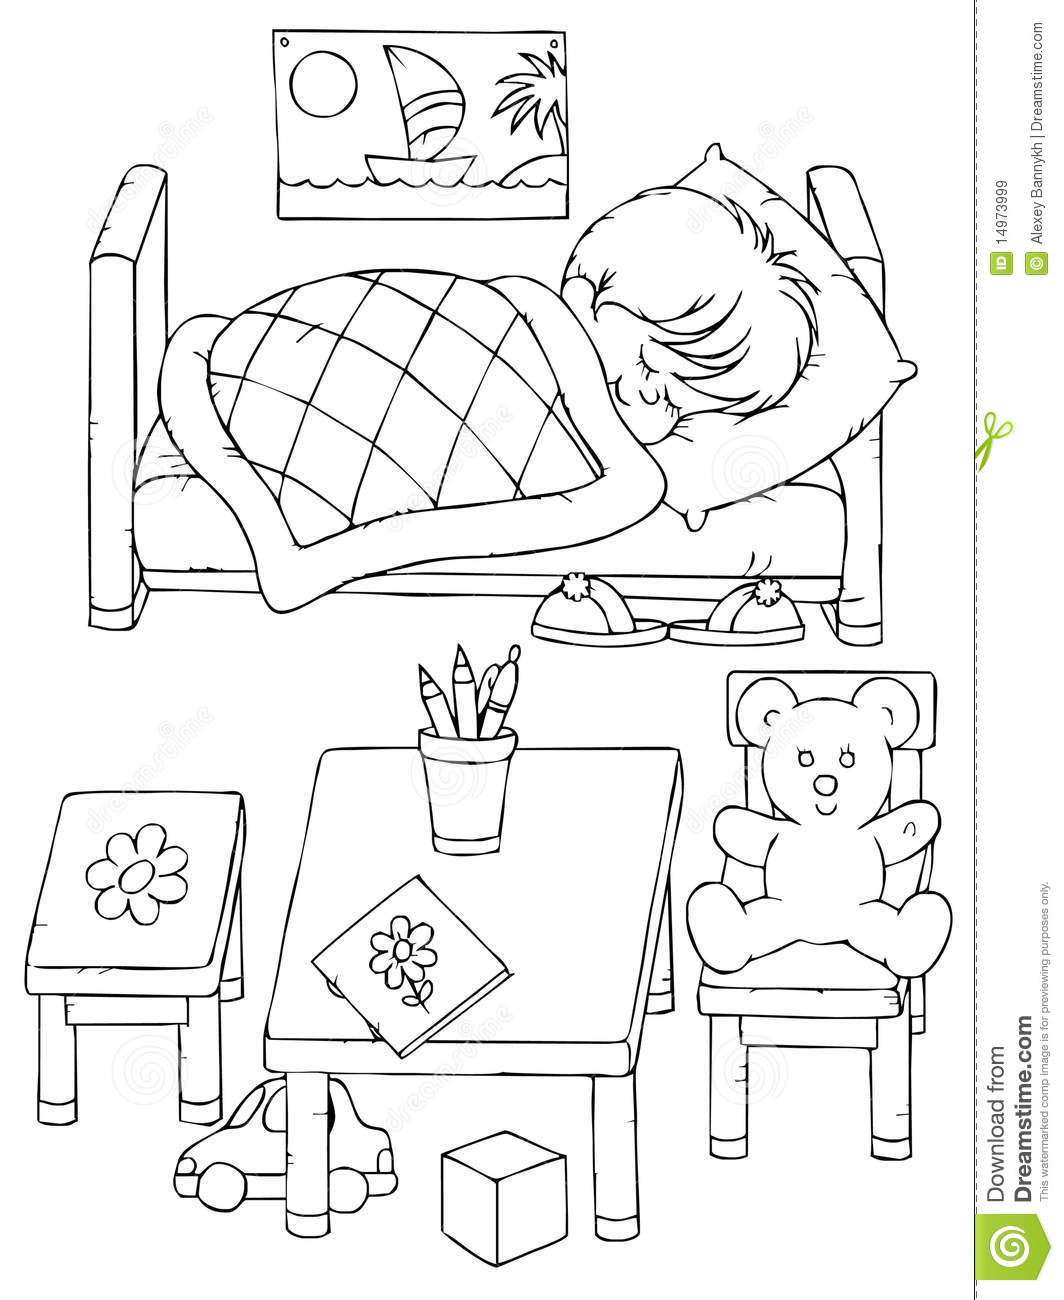 Printable Worksheet Sleep